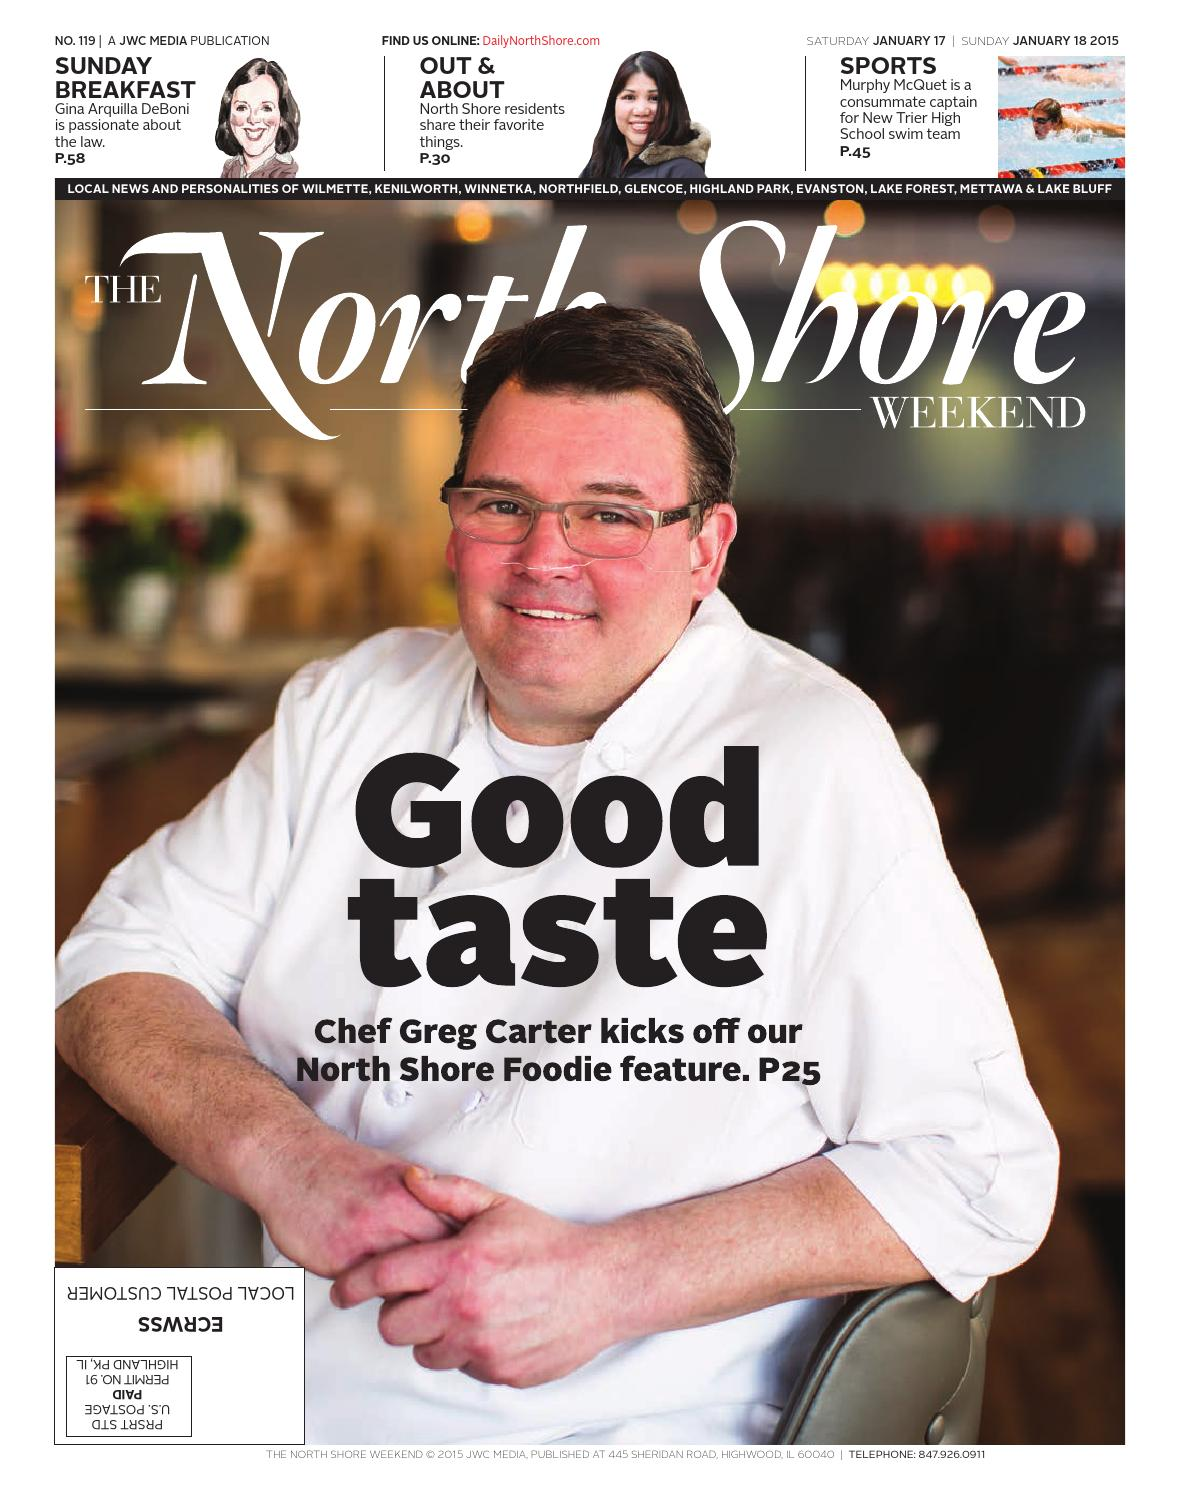 The North Shore Weekend East Issue 119 By Jwc Media Issuu